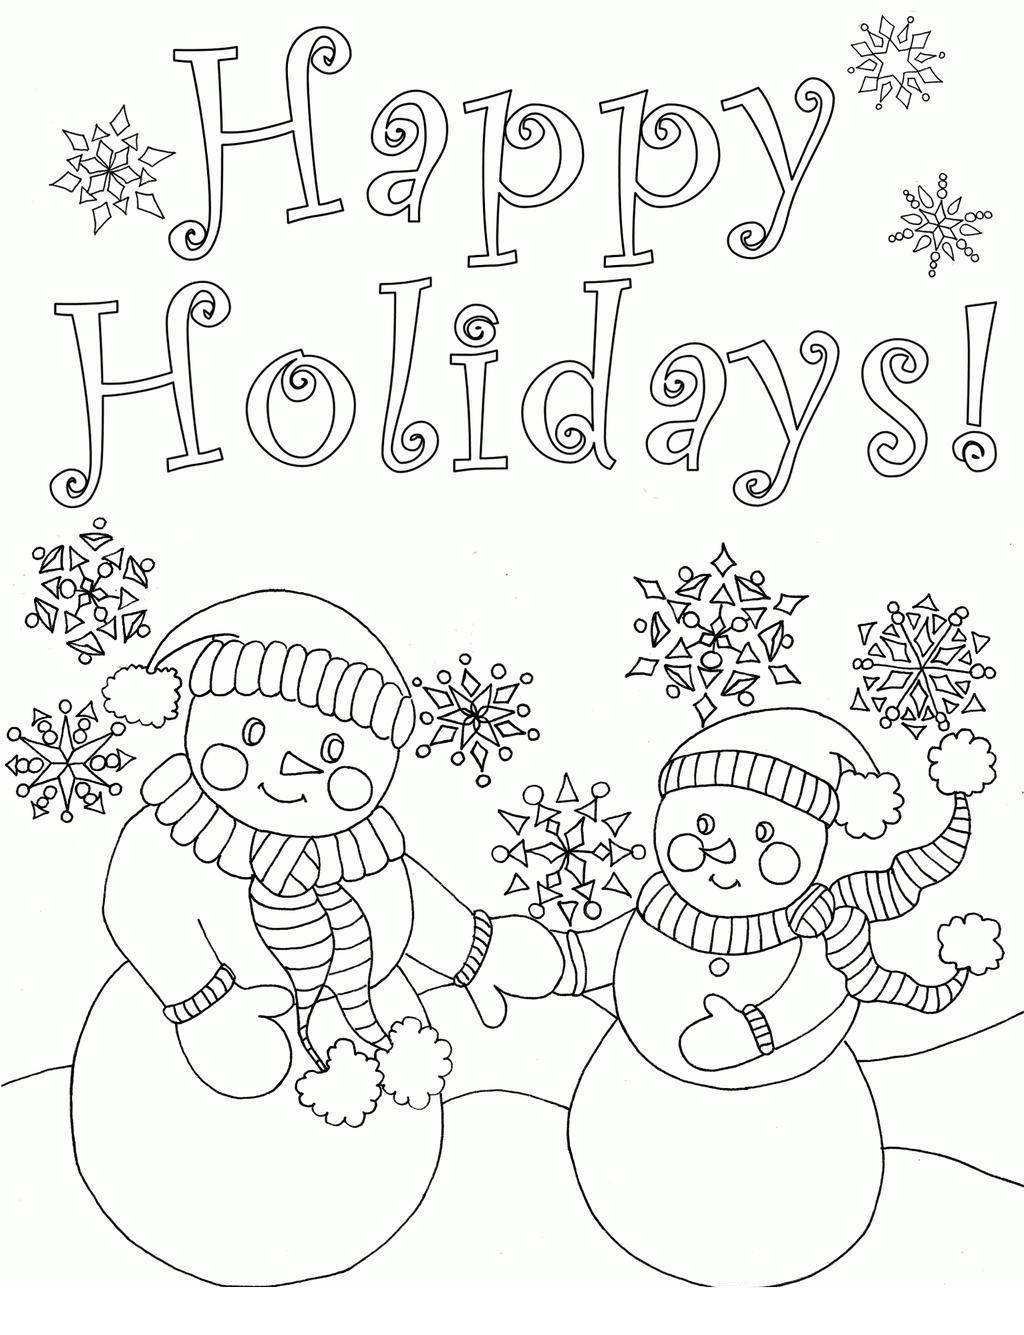 Spanish Holiday Coloring Pages Mothers Day Lineart Free